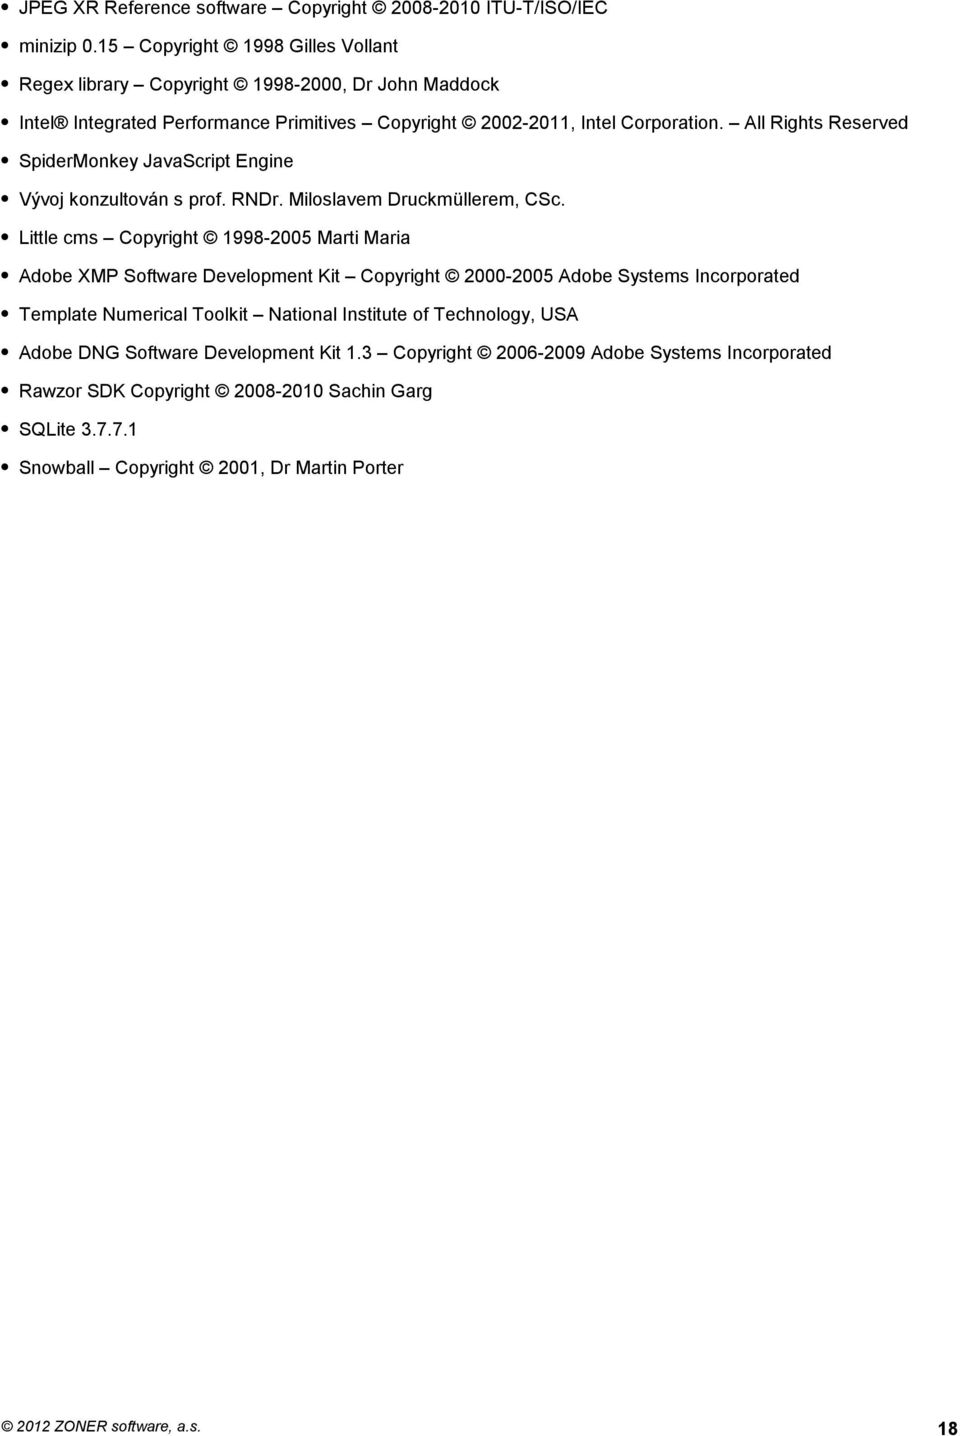 All Rights Reserved SpiderMonkey JavaScript Engine Vývoj konzultován s prof. RNDr. Miloslavem Druckmüllerem, CSc.